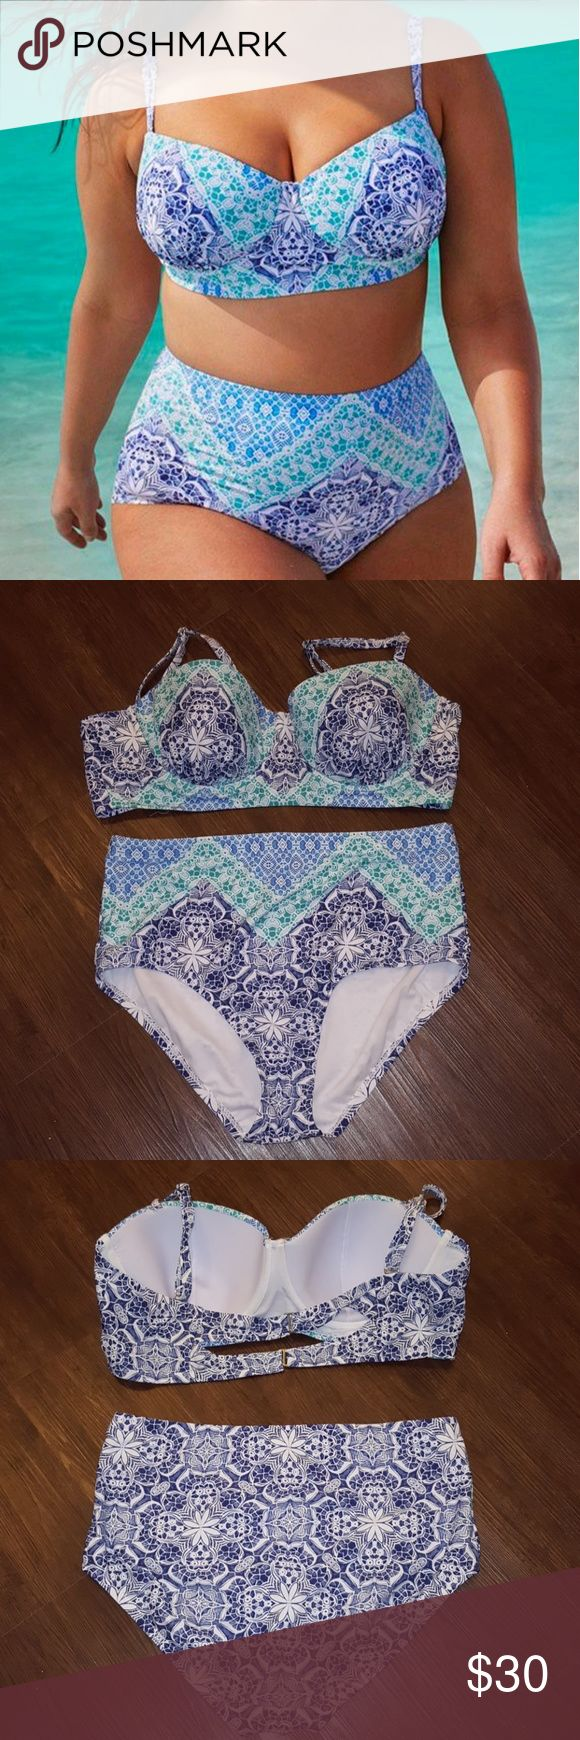 🌴☀️ PLUS SIZE ▪️ Gorgeous Print Bikini ☀️🌴 Excellent condition! Worn and washed one time, has been washed in cold water and hung dry. Swim Sexy bikini from swimsuitsforall. High waisted bottoms, padd-less top with adjustable straps that can be changed to a cross-back. Two closures on back with a cut-out detail. 82% nylon, 18% spandex, lining 100% polyester. Both size 16 and fit true to size Such a beautiful and flattering swimsuit! Price is firm unless bundled. 💕 [ I do not trade ]  […